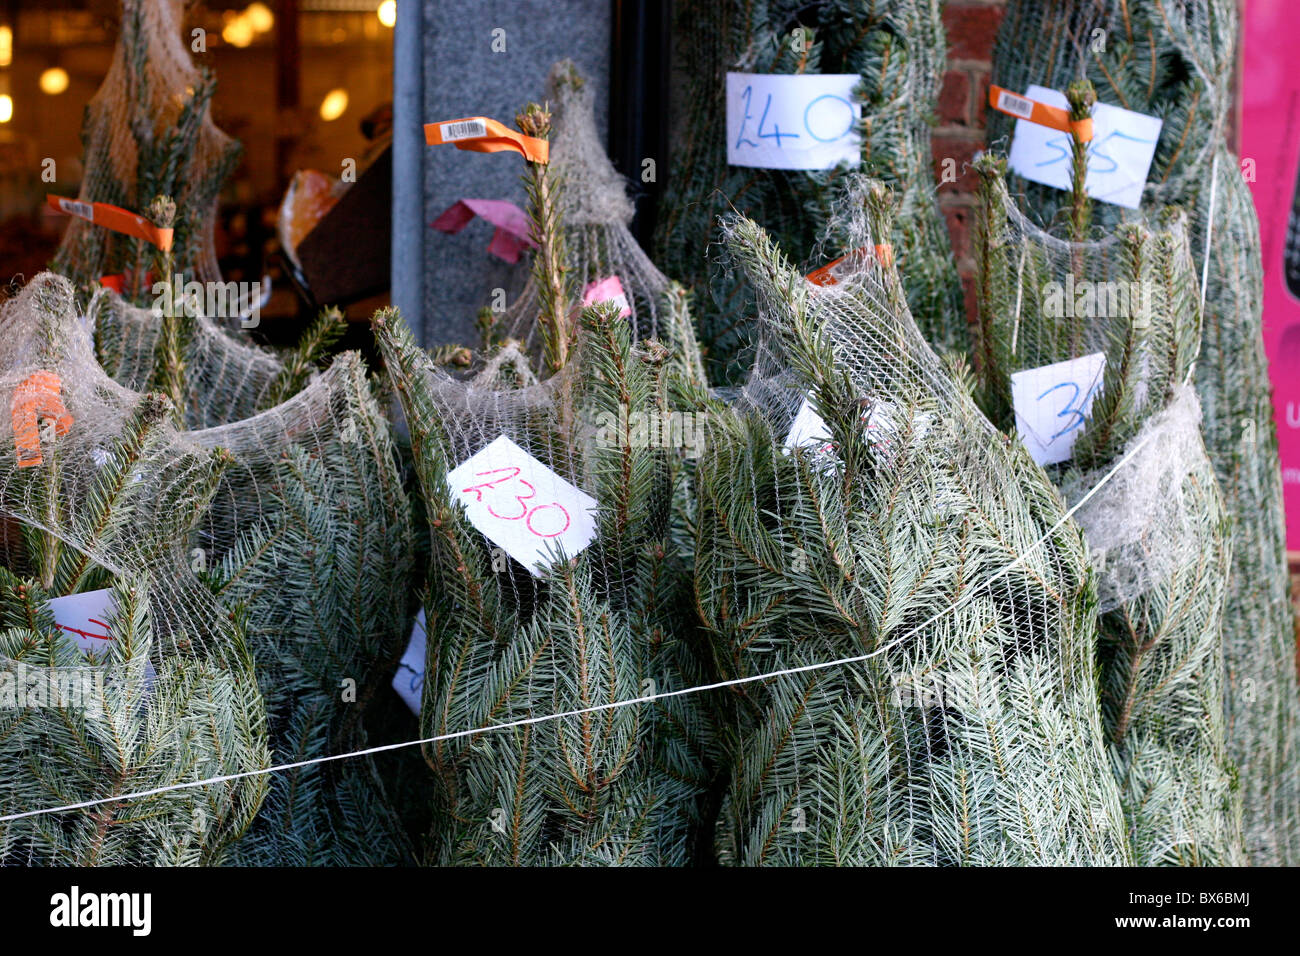 Christmas trees to orderStock Photo